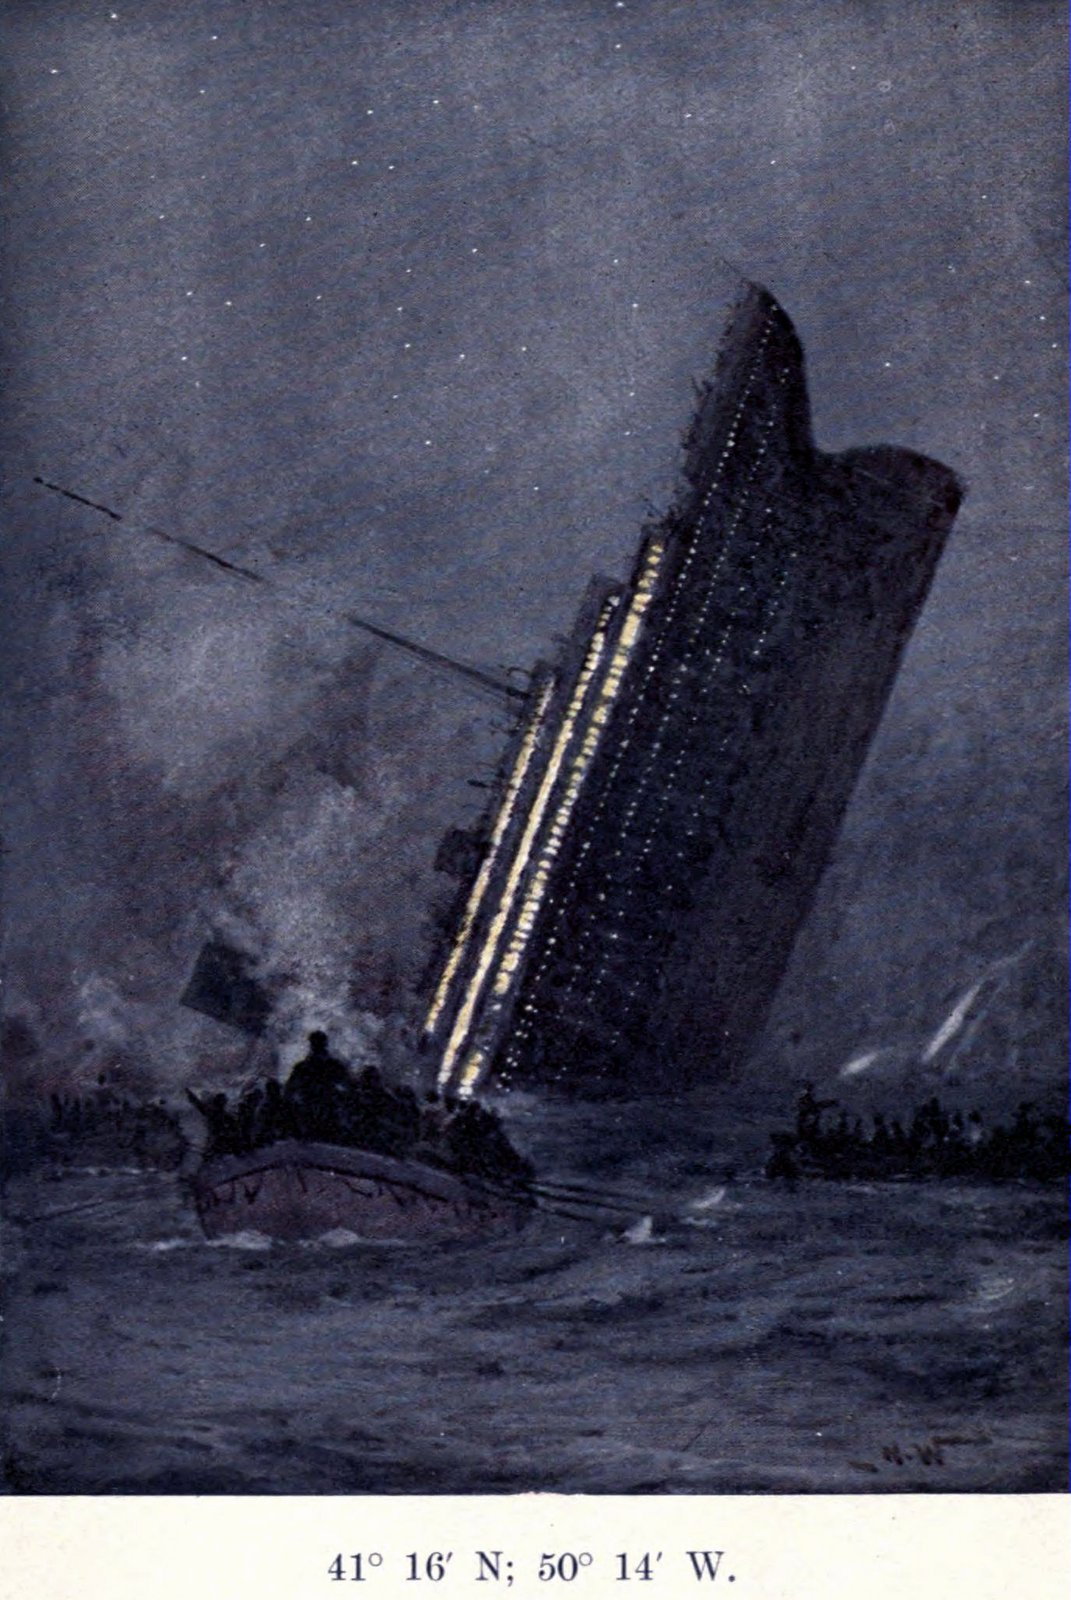 The Titanic S Terrifying Last Moments Before Sinking To The